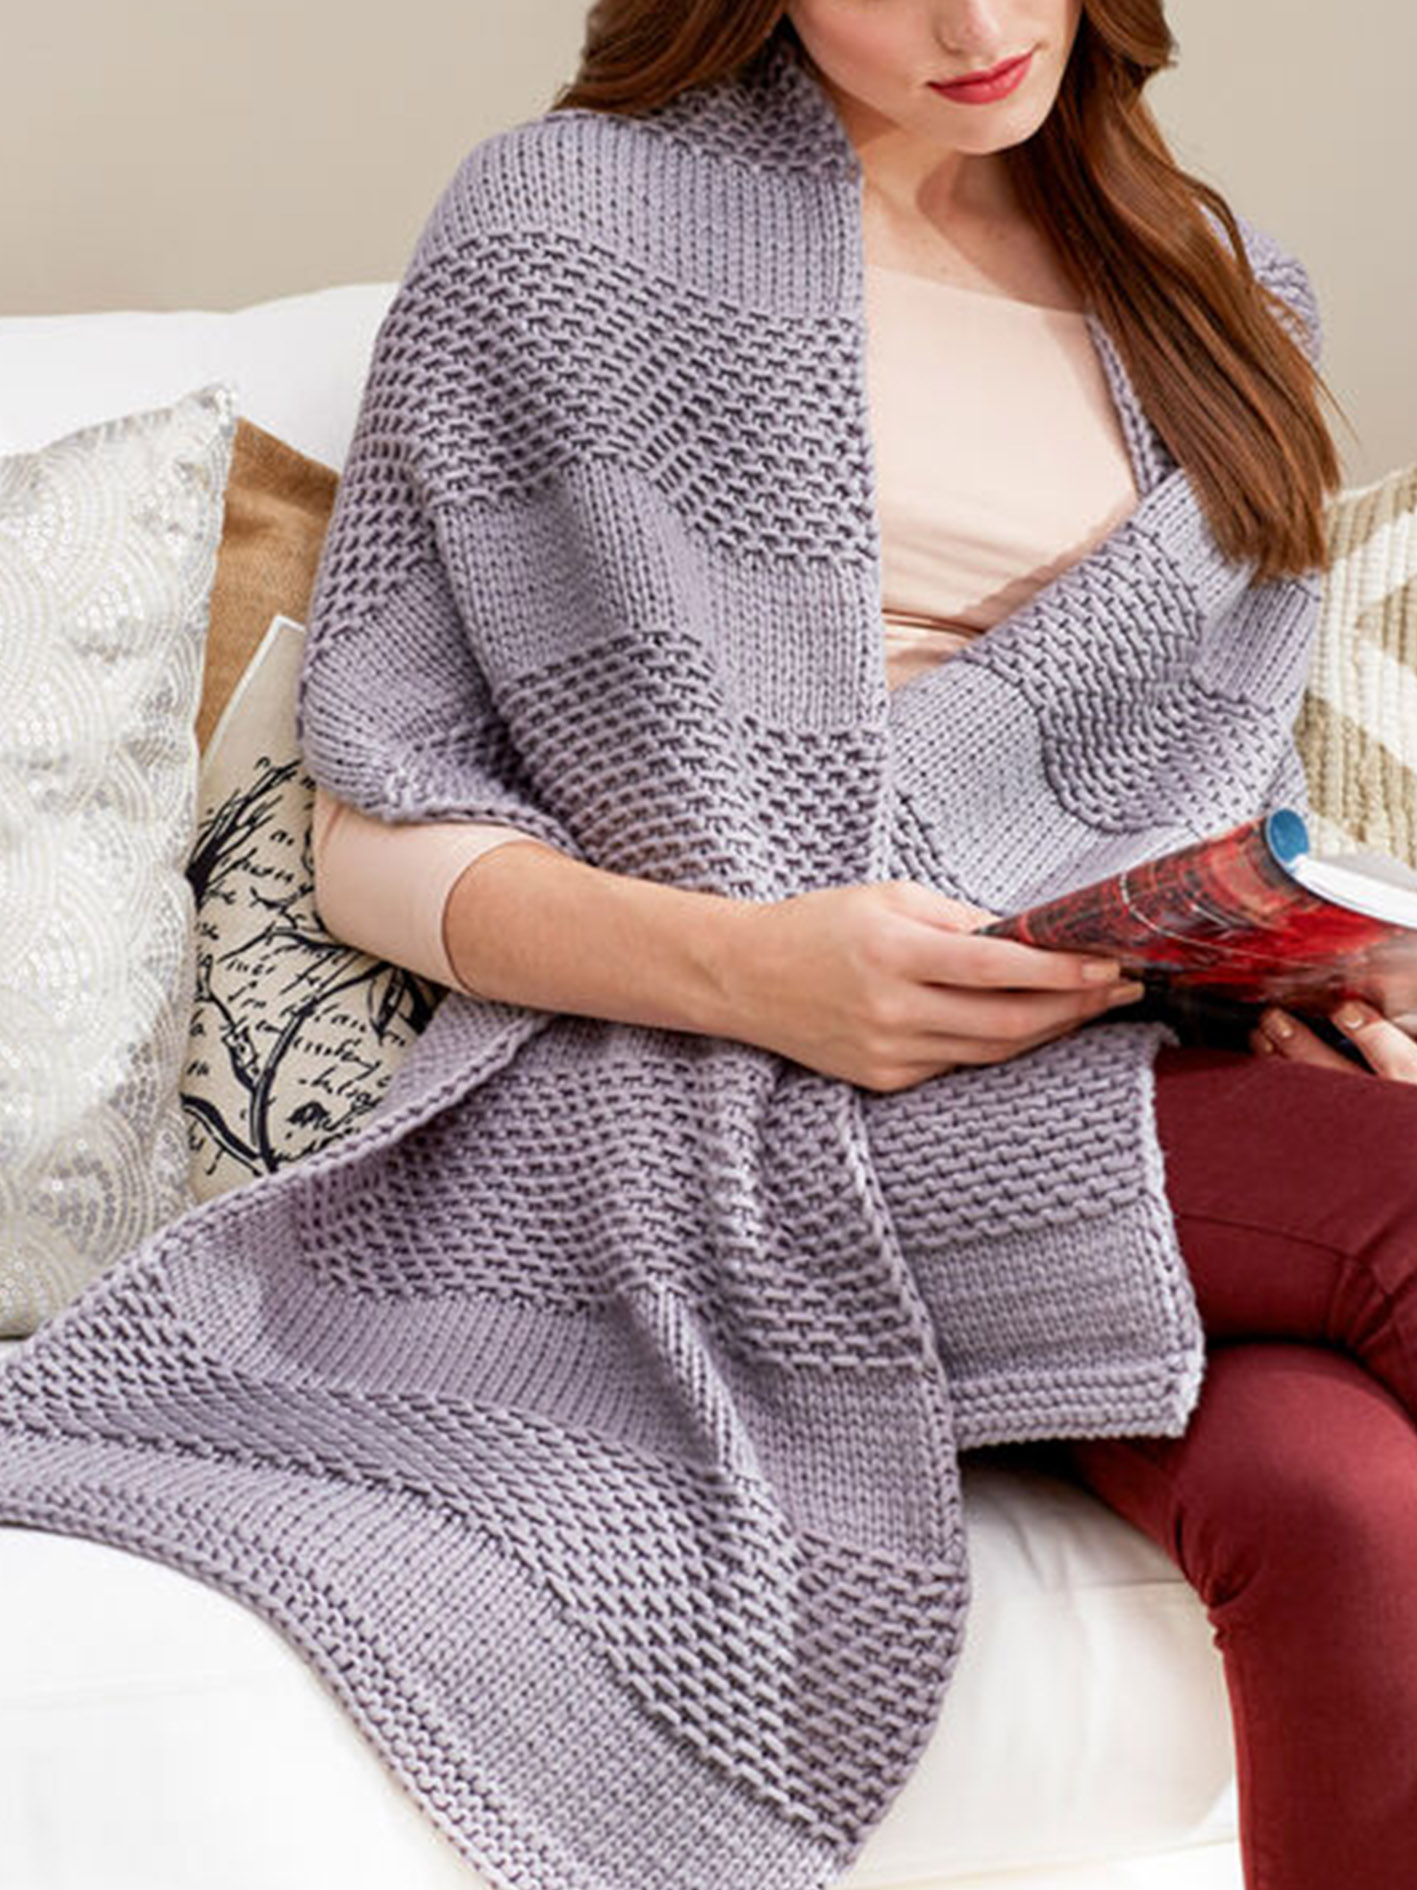 30-free-fast-and-easy-afghan-crochet-blanket-patterns-for-beginners-2019